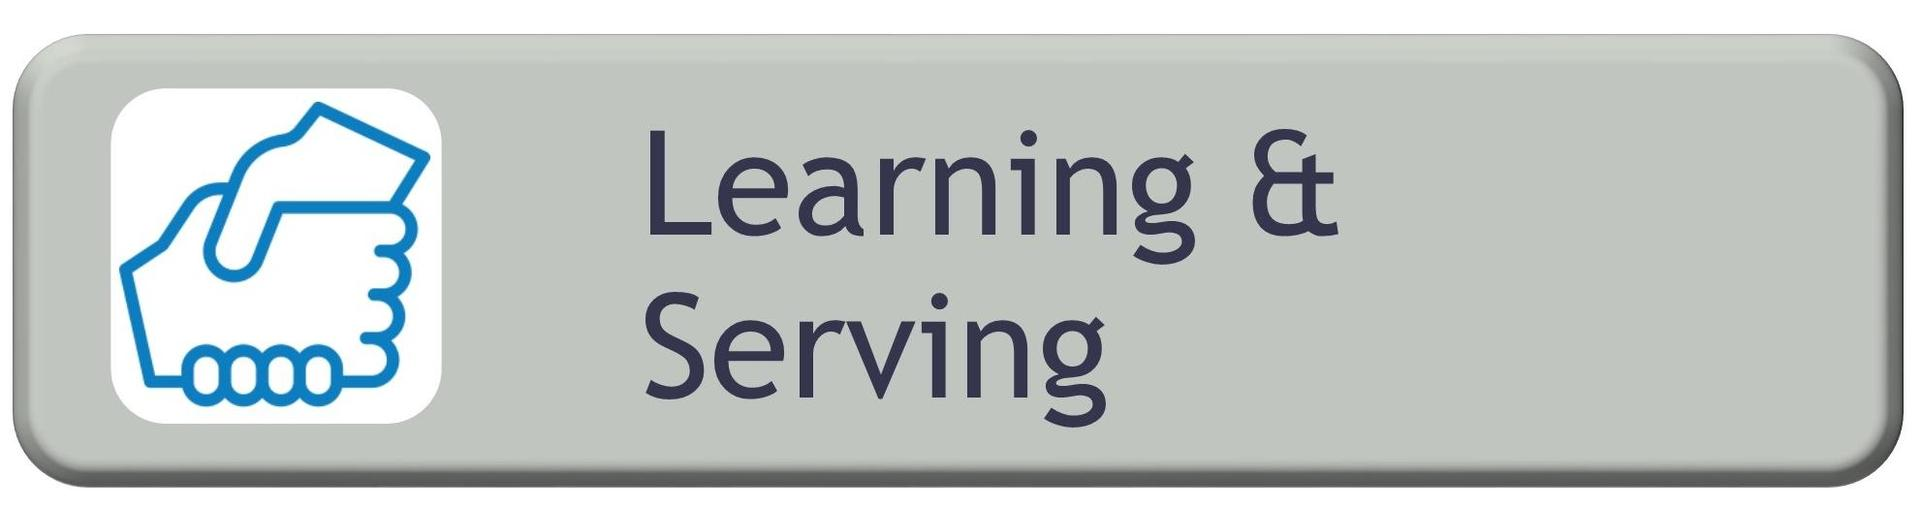 Learning & Serving